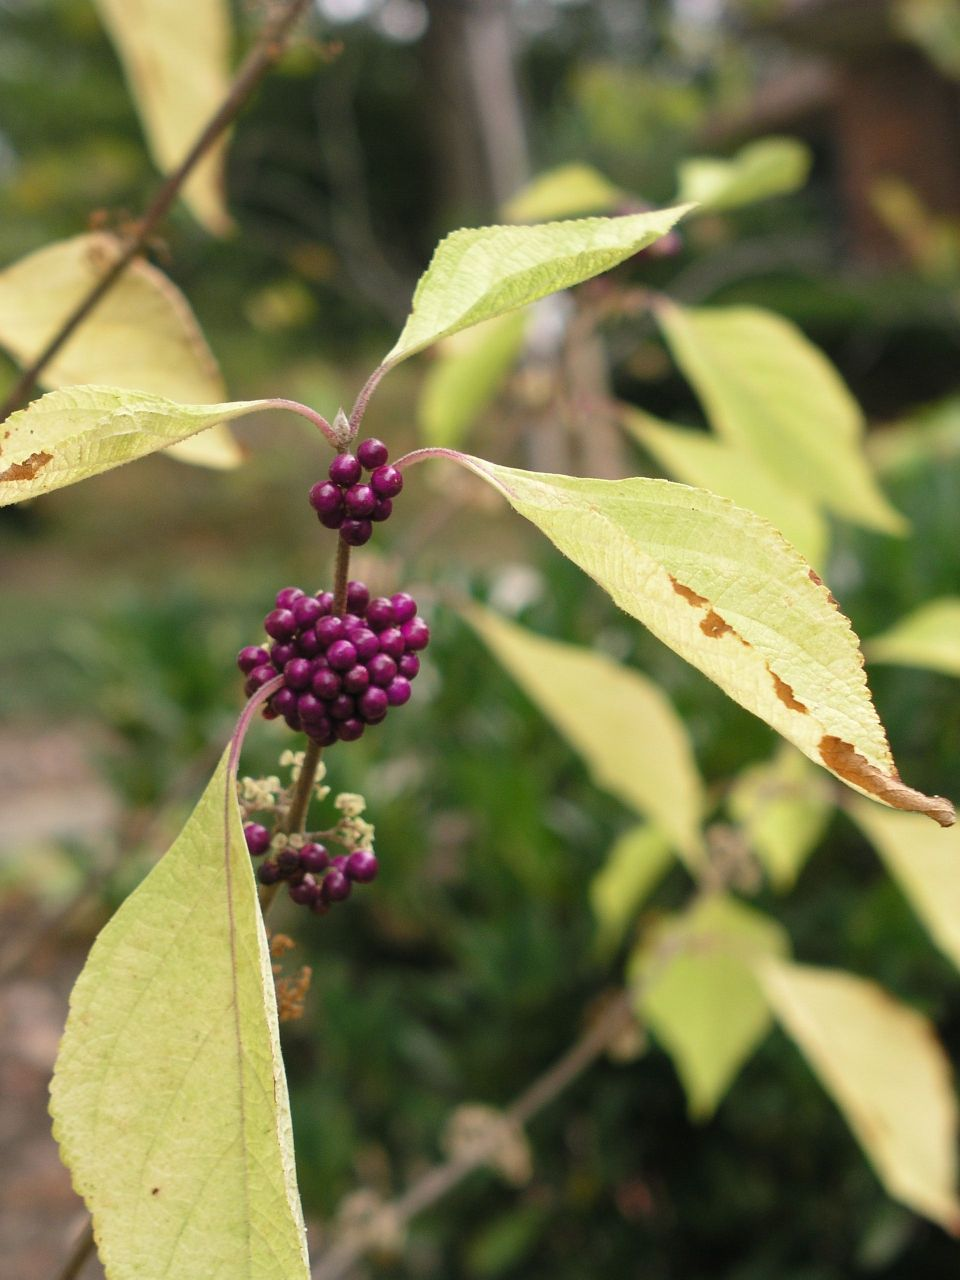 Close up photo of a plant with yellowish green leaves and deep purple berries clustered around the stem.